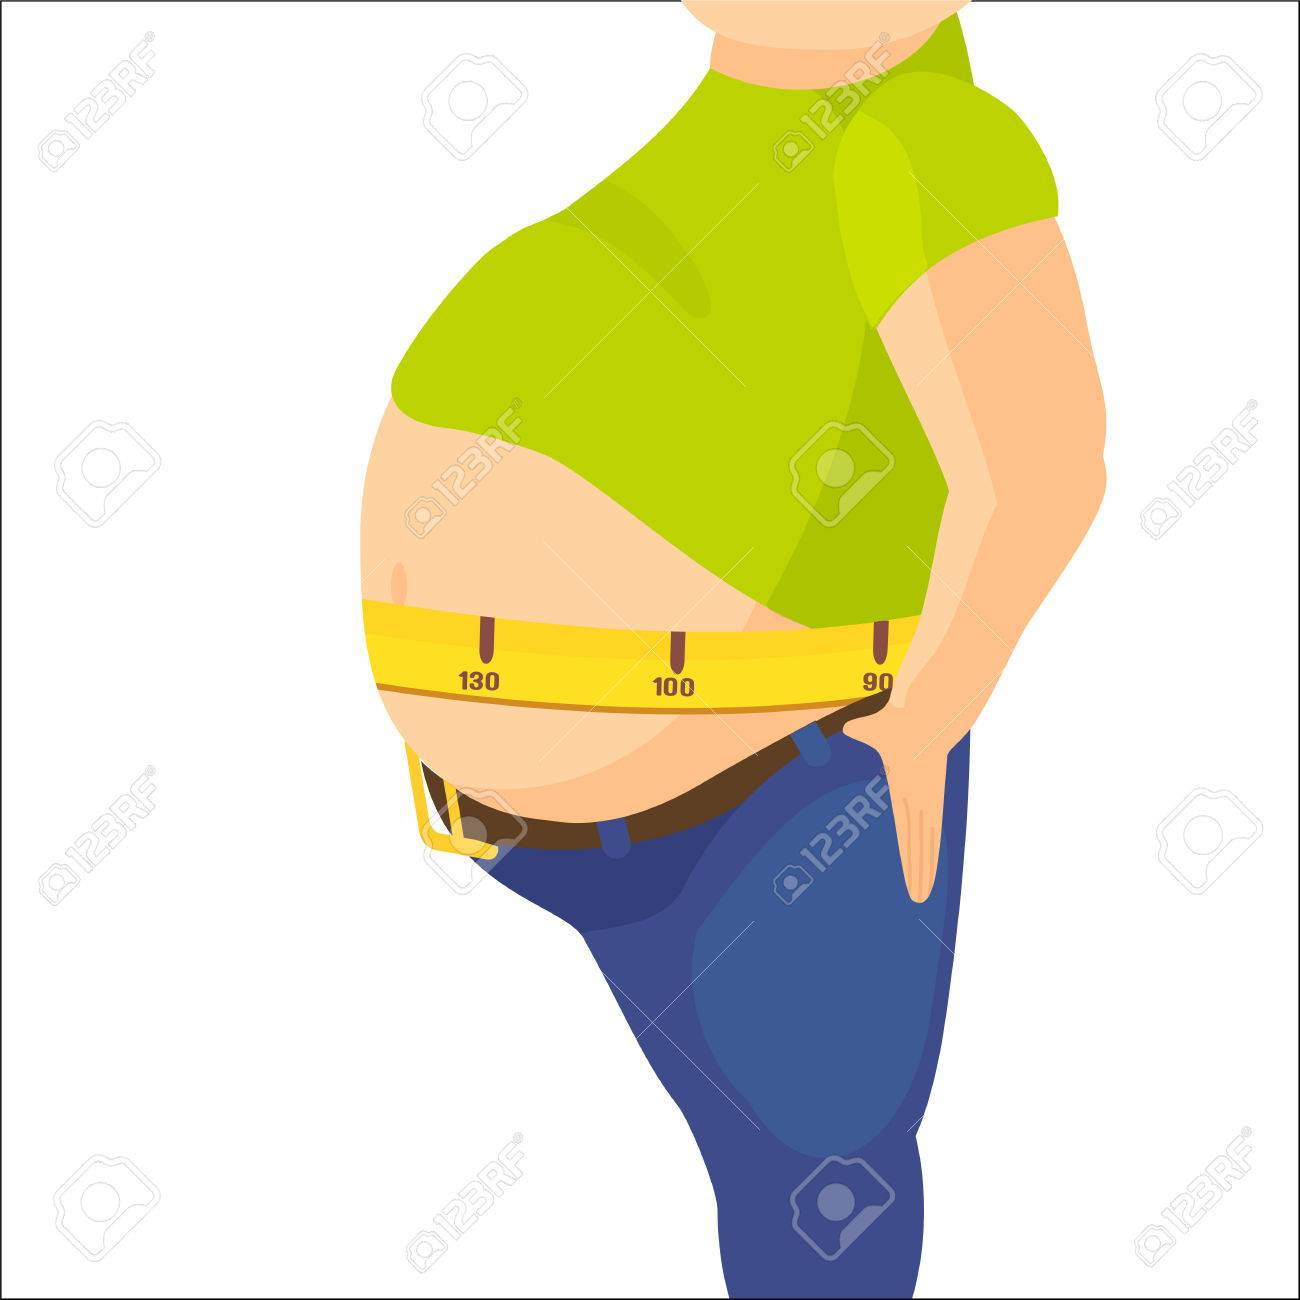 Abdomen Fat Overweight Man With A Big Belly And Measure Tape